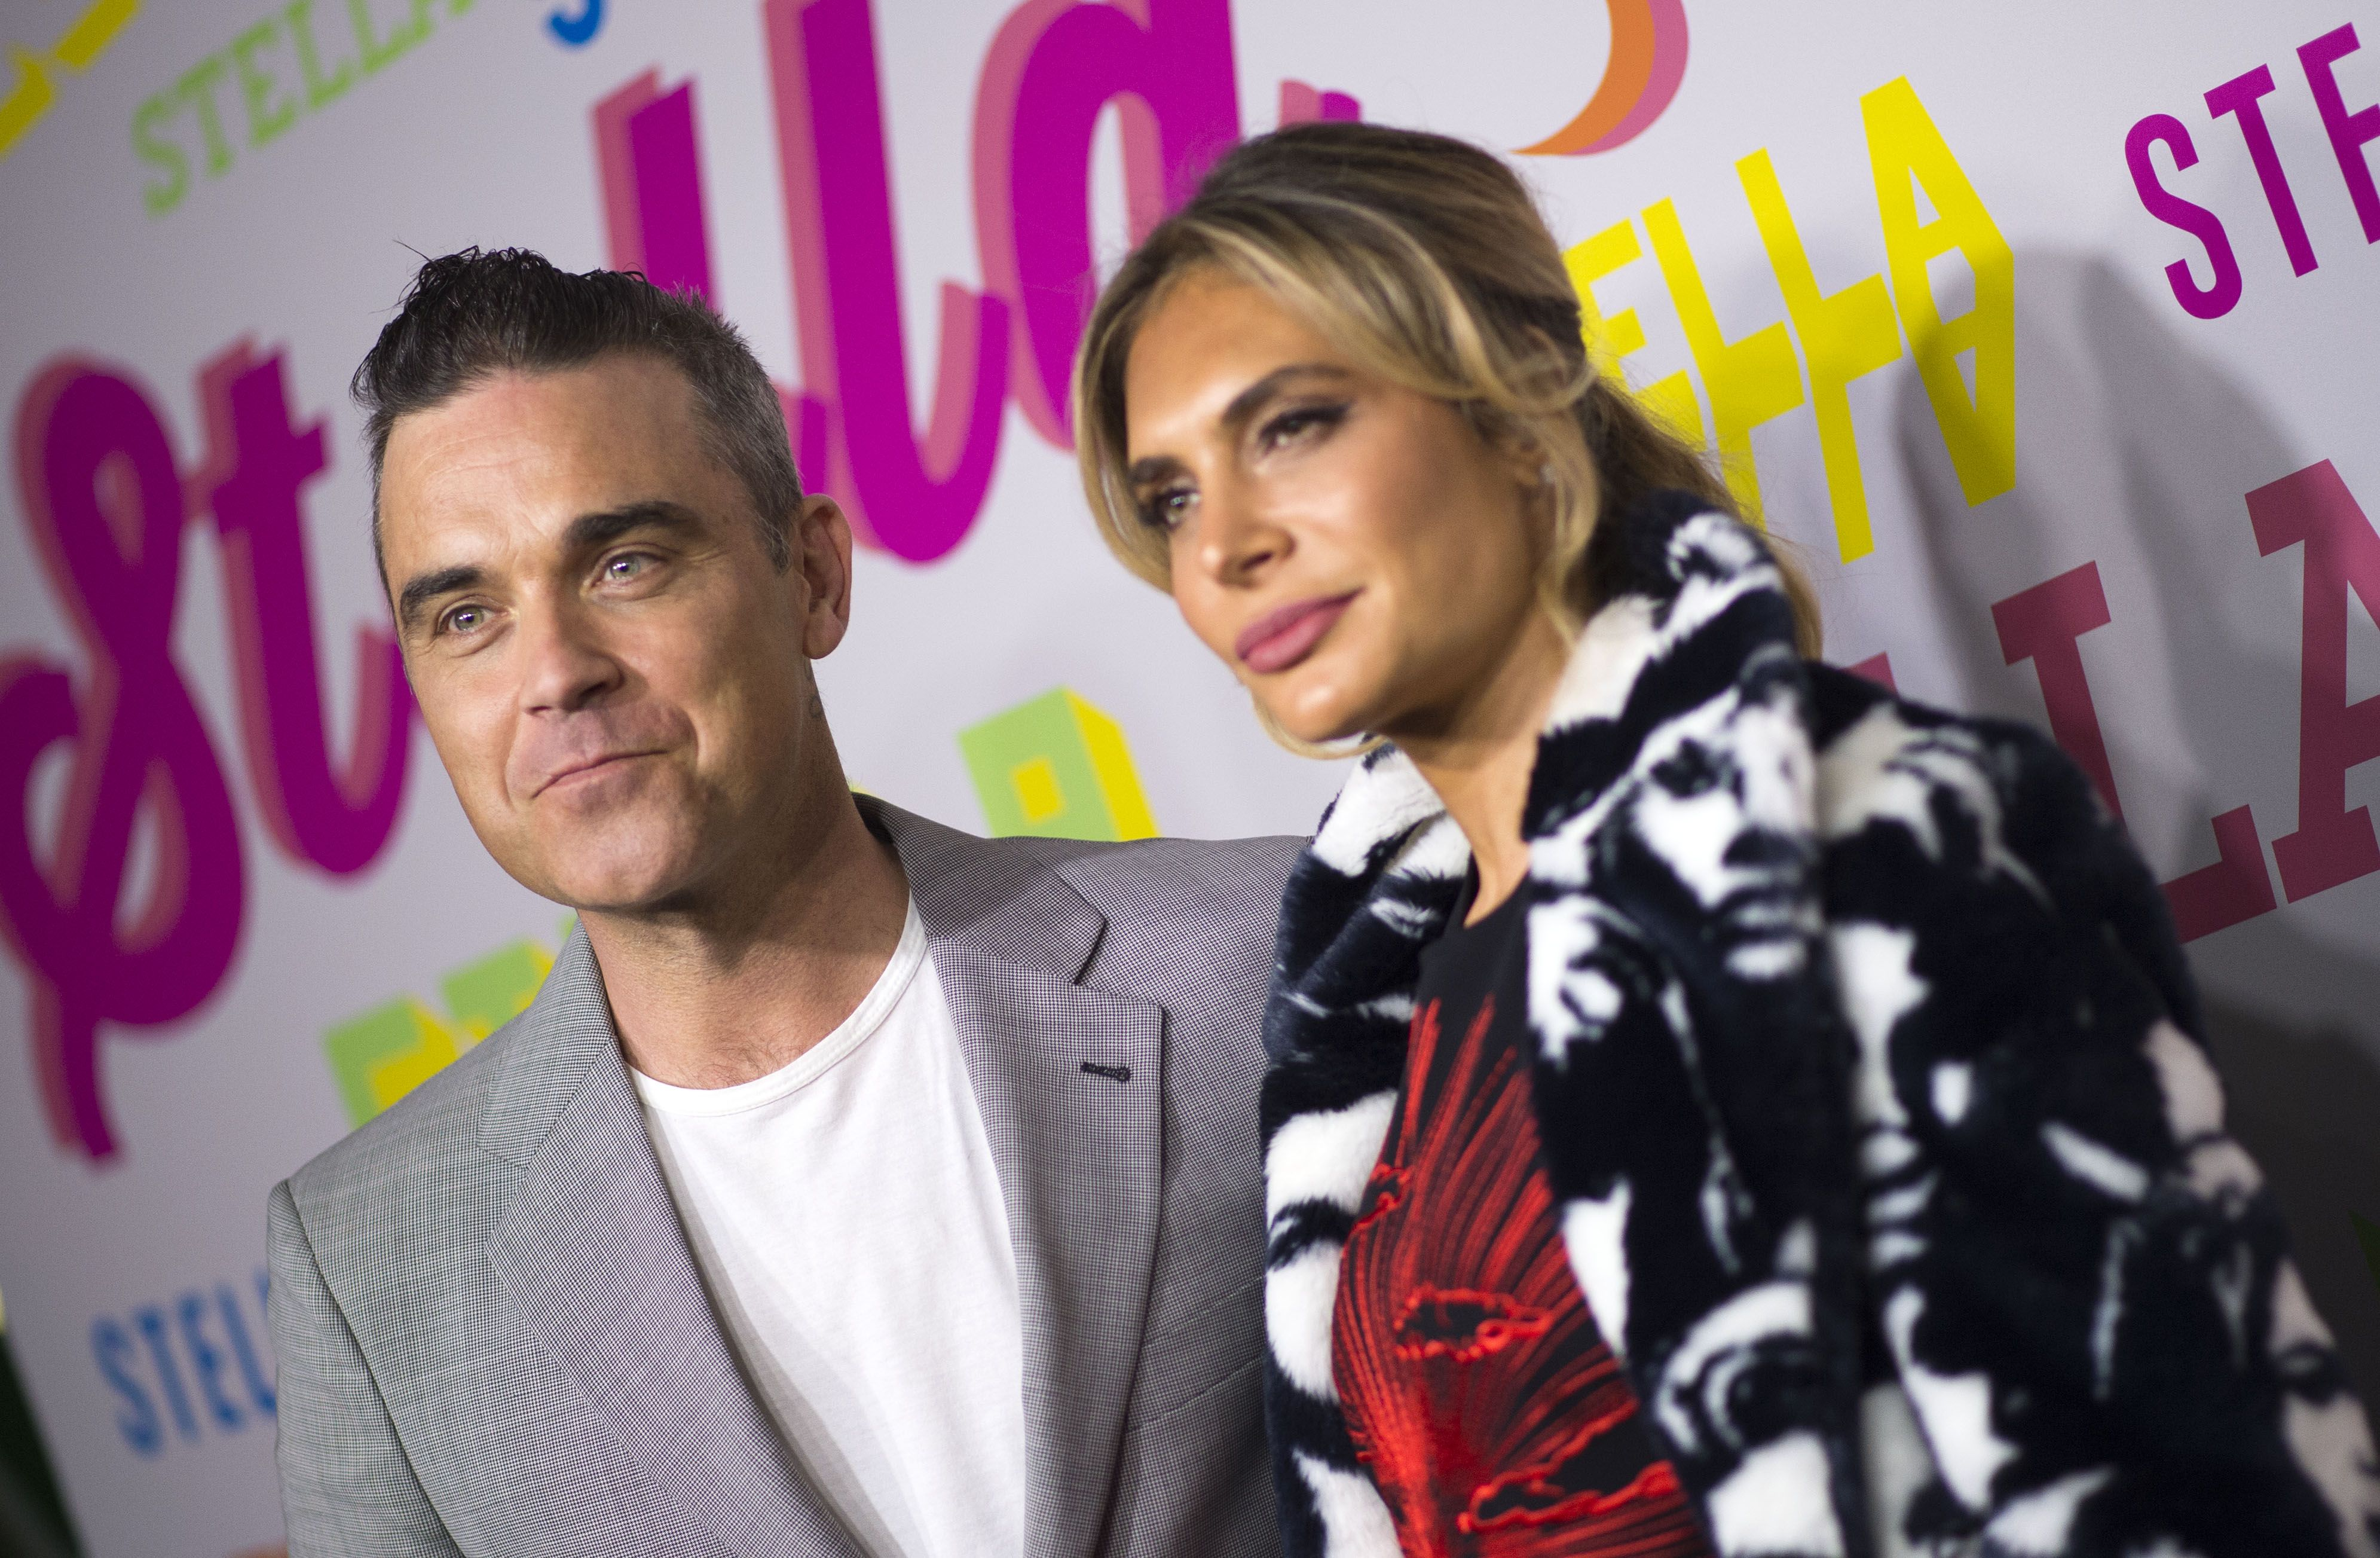 Simon Cowell says Robbie Williams and his wife are joining the X Factor judging panel